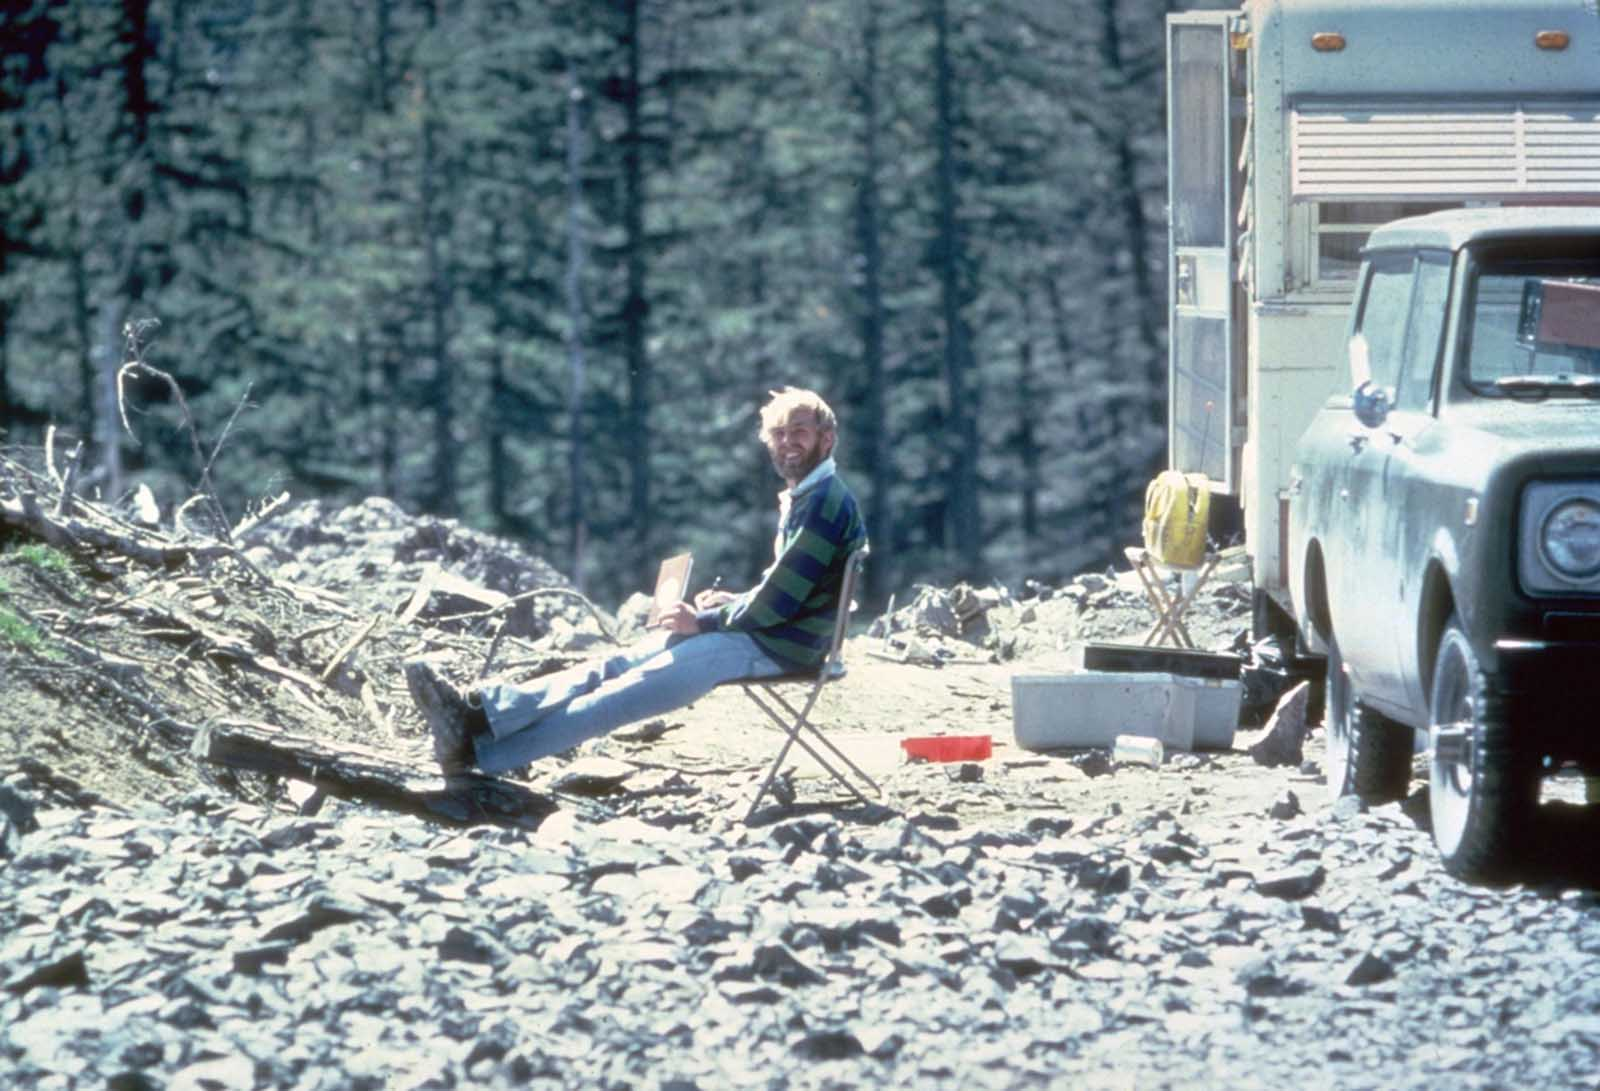 On May 17, 1980, vulcanologist David Johnston sits at Coldwater II camp near Mt. St. Helens. At 8:32 a.m. the next morning, Johnston radioed a message to the USGS headquarters: